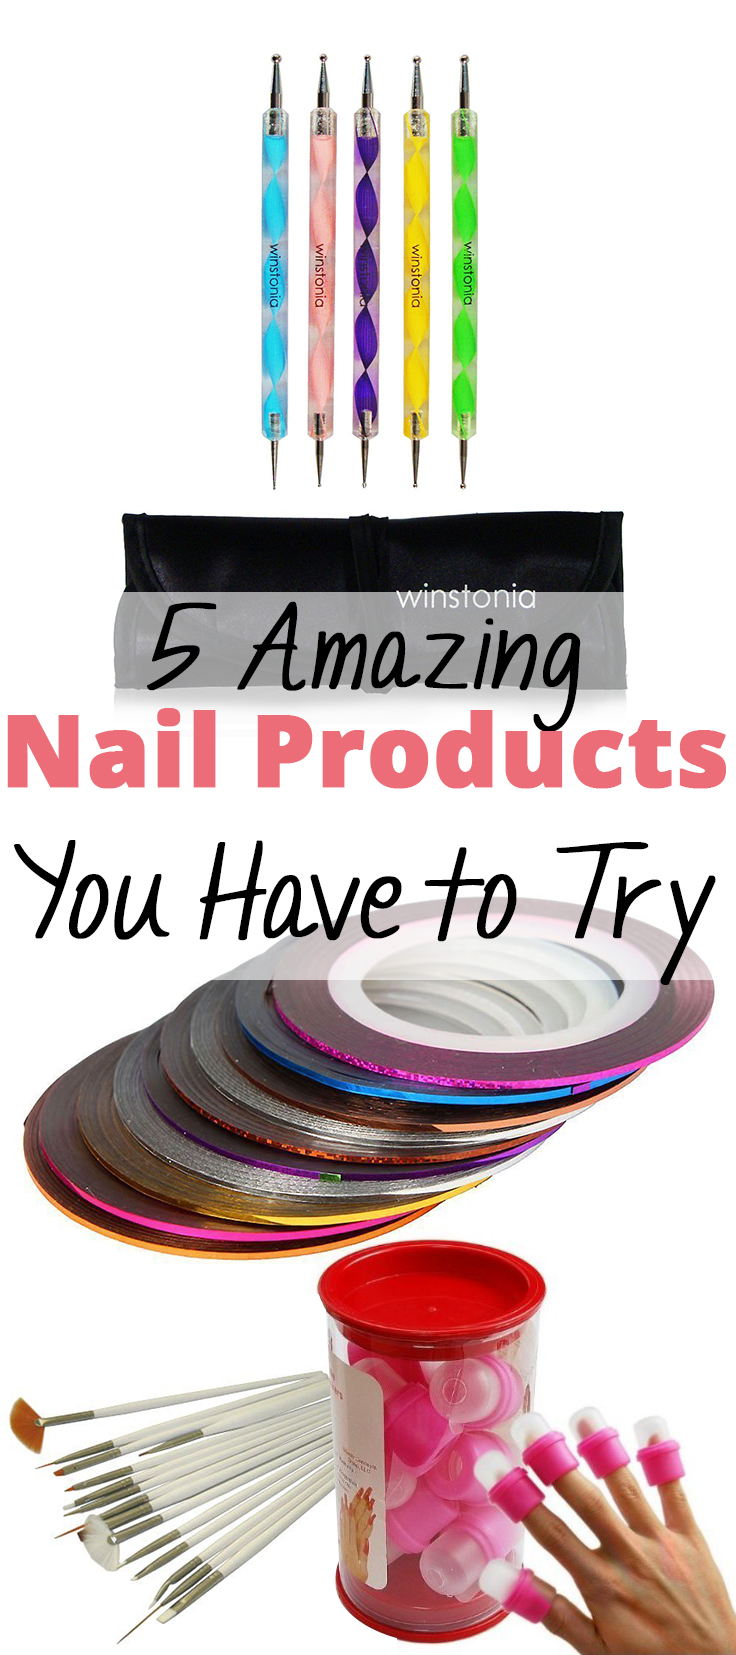 5 Amazing Nail Products You Have to Try